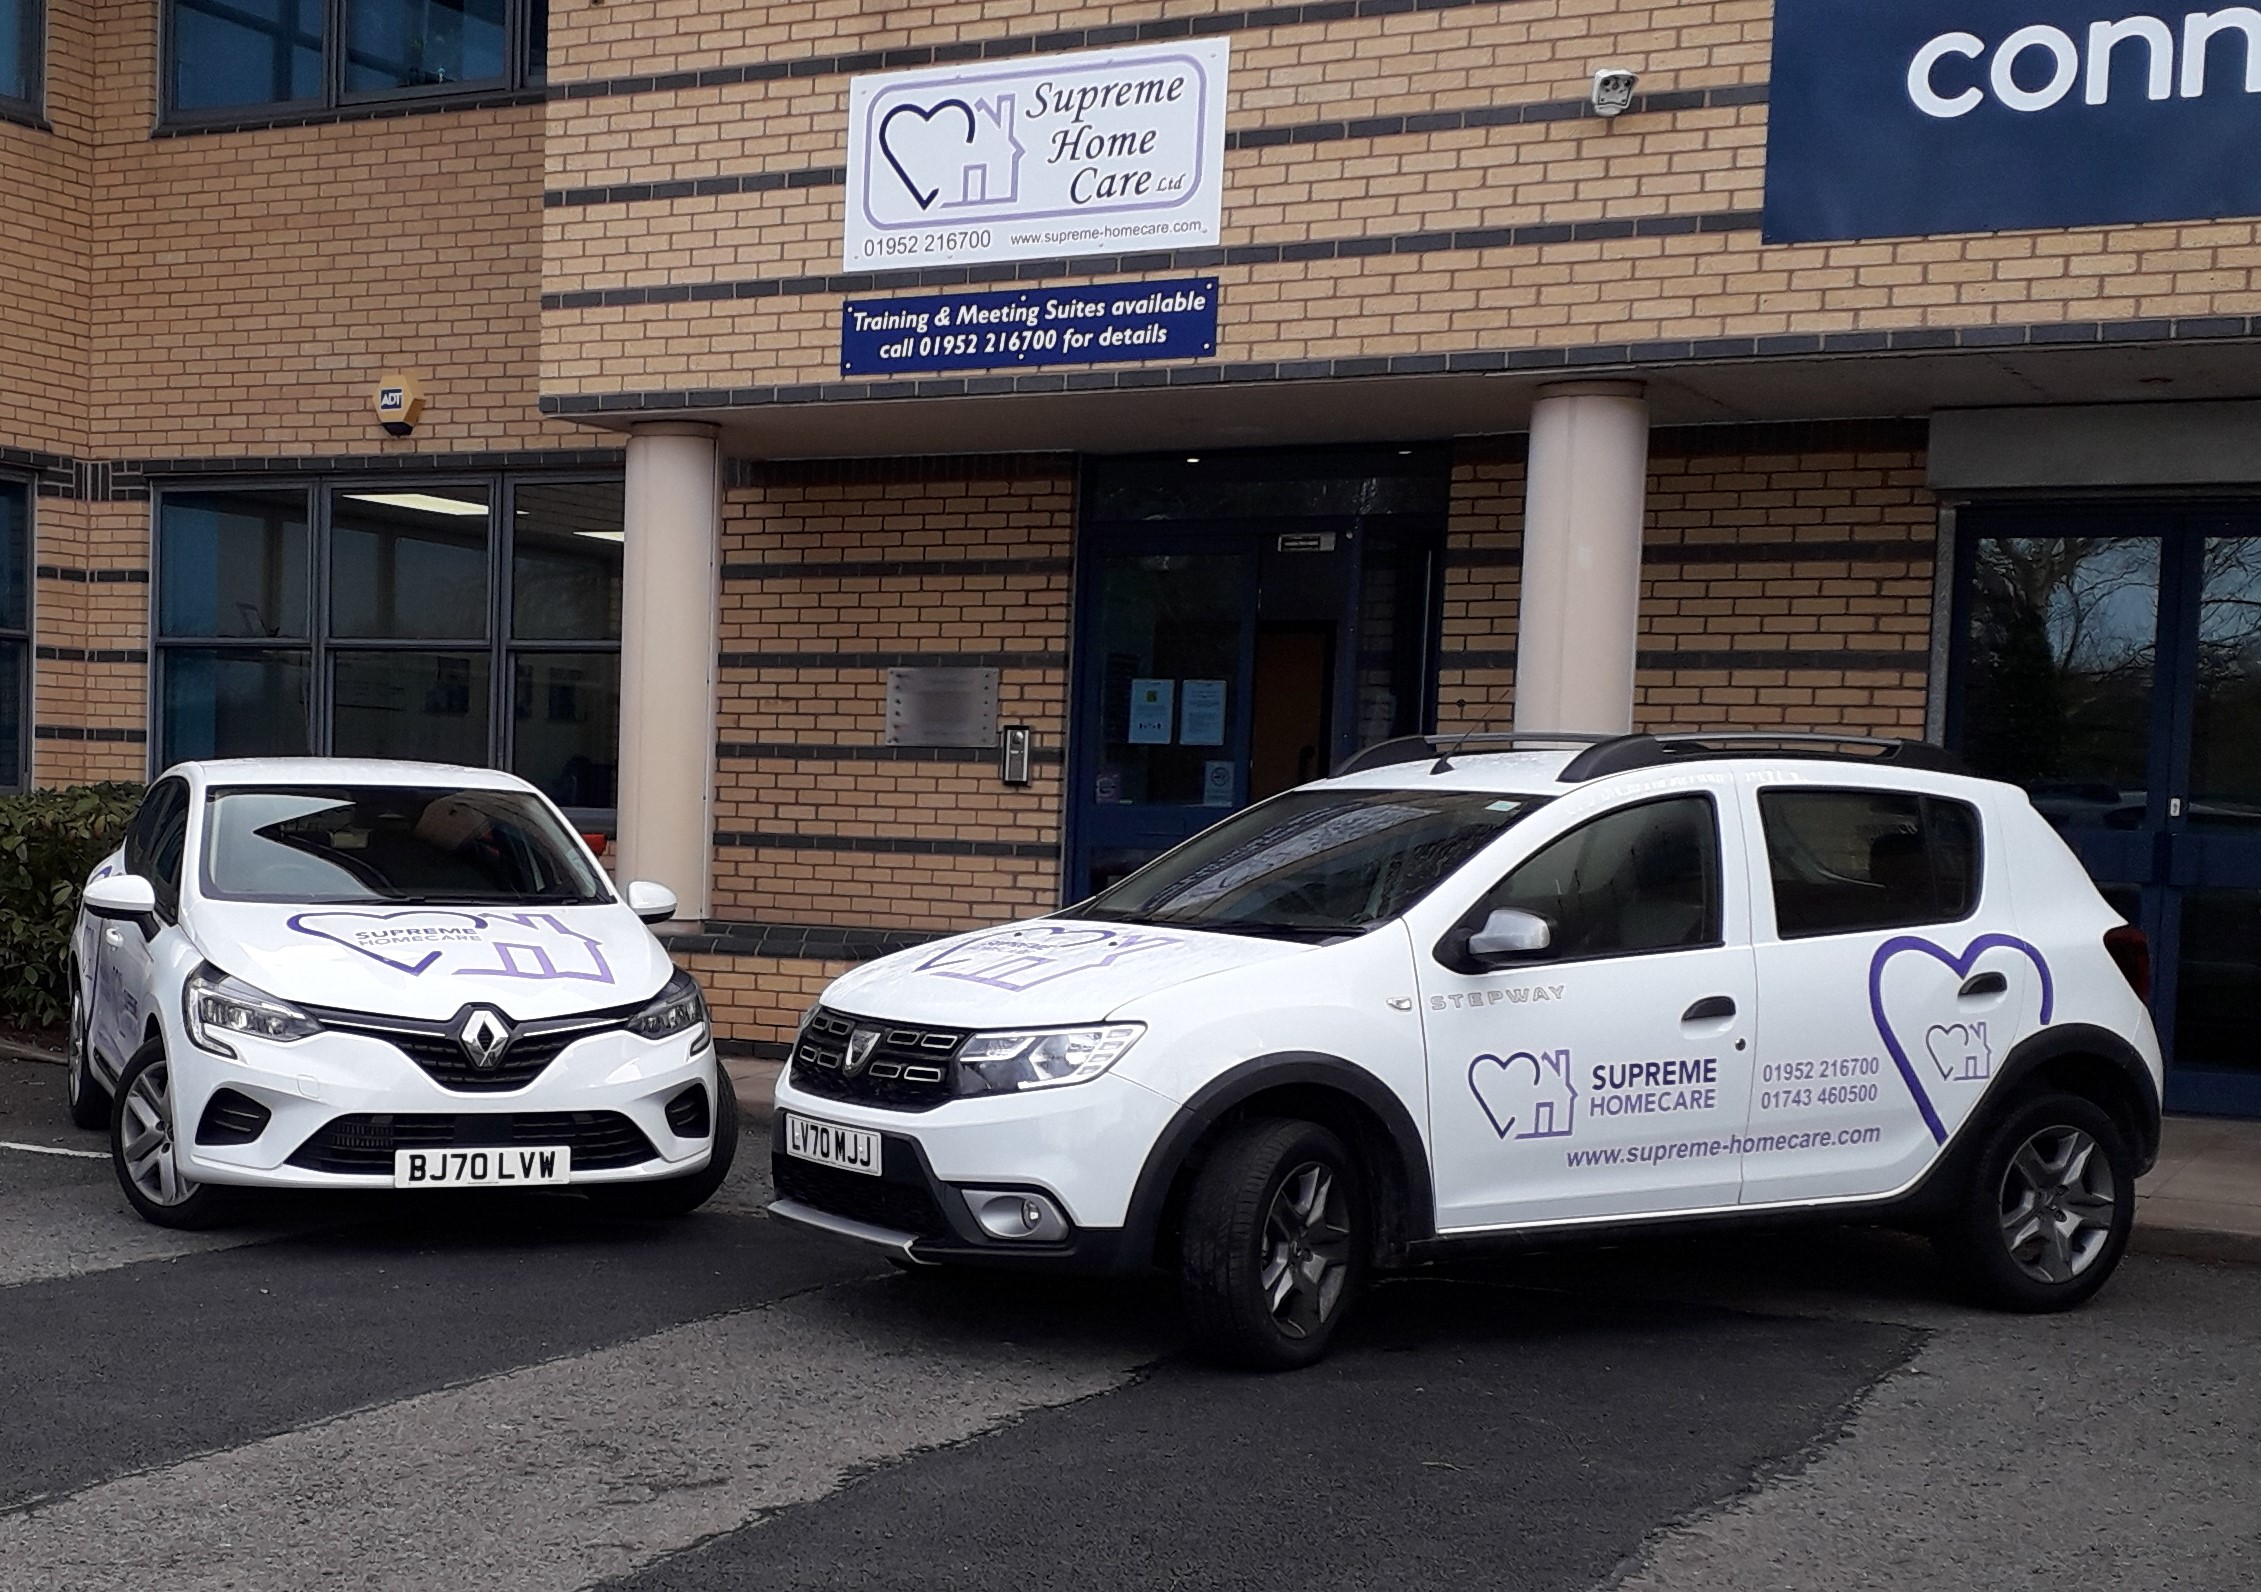 Supreme Home Care has taken delivery of its new fleet cars with their striking livery (thanks to Signs Express Telford). Business Director Sue Robson said 'It's important that staff are able to fulfil their carer commitments, even if their own car is off the road. This is particularly important during Covid-19 when we are trying to limit the number of staff visiting each client, we don't want to have to schedule replacements. We are able to lend our staff a pool car so they can continue to see their clients as planned without having to travel on public transport.'